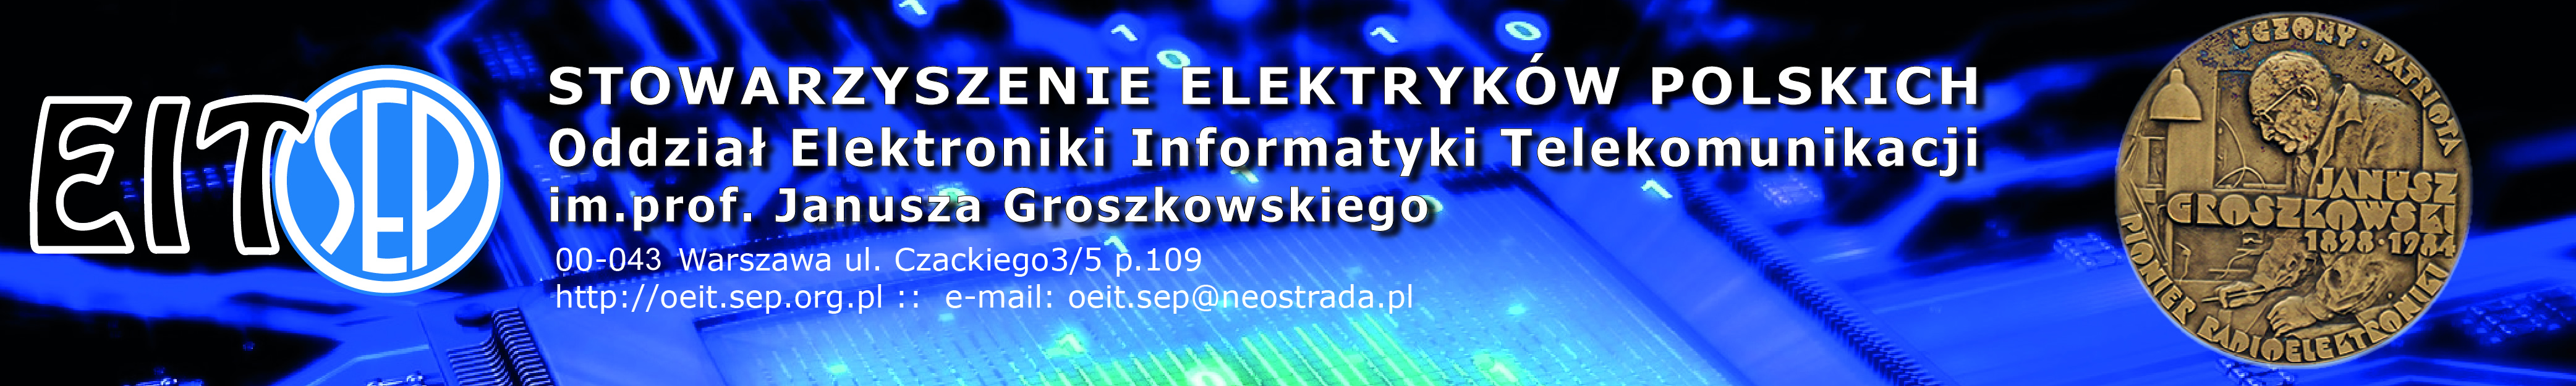 Oddział Elektroniki Informatyki Telekomunikacji